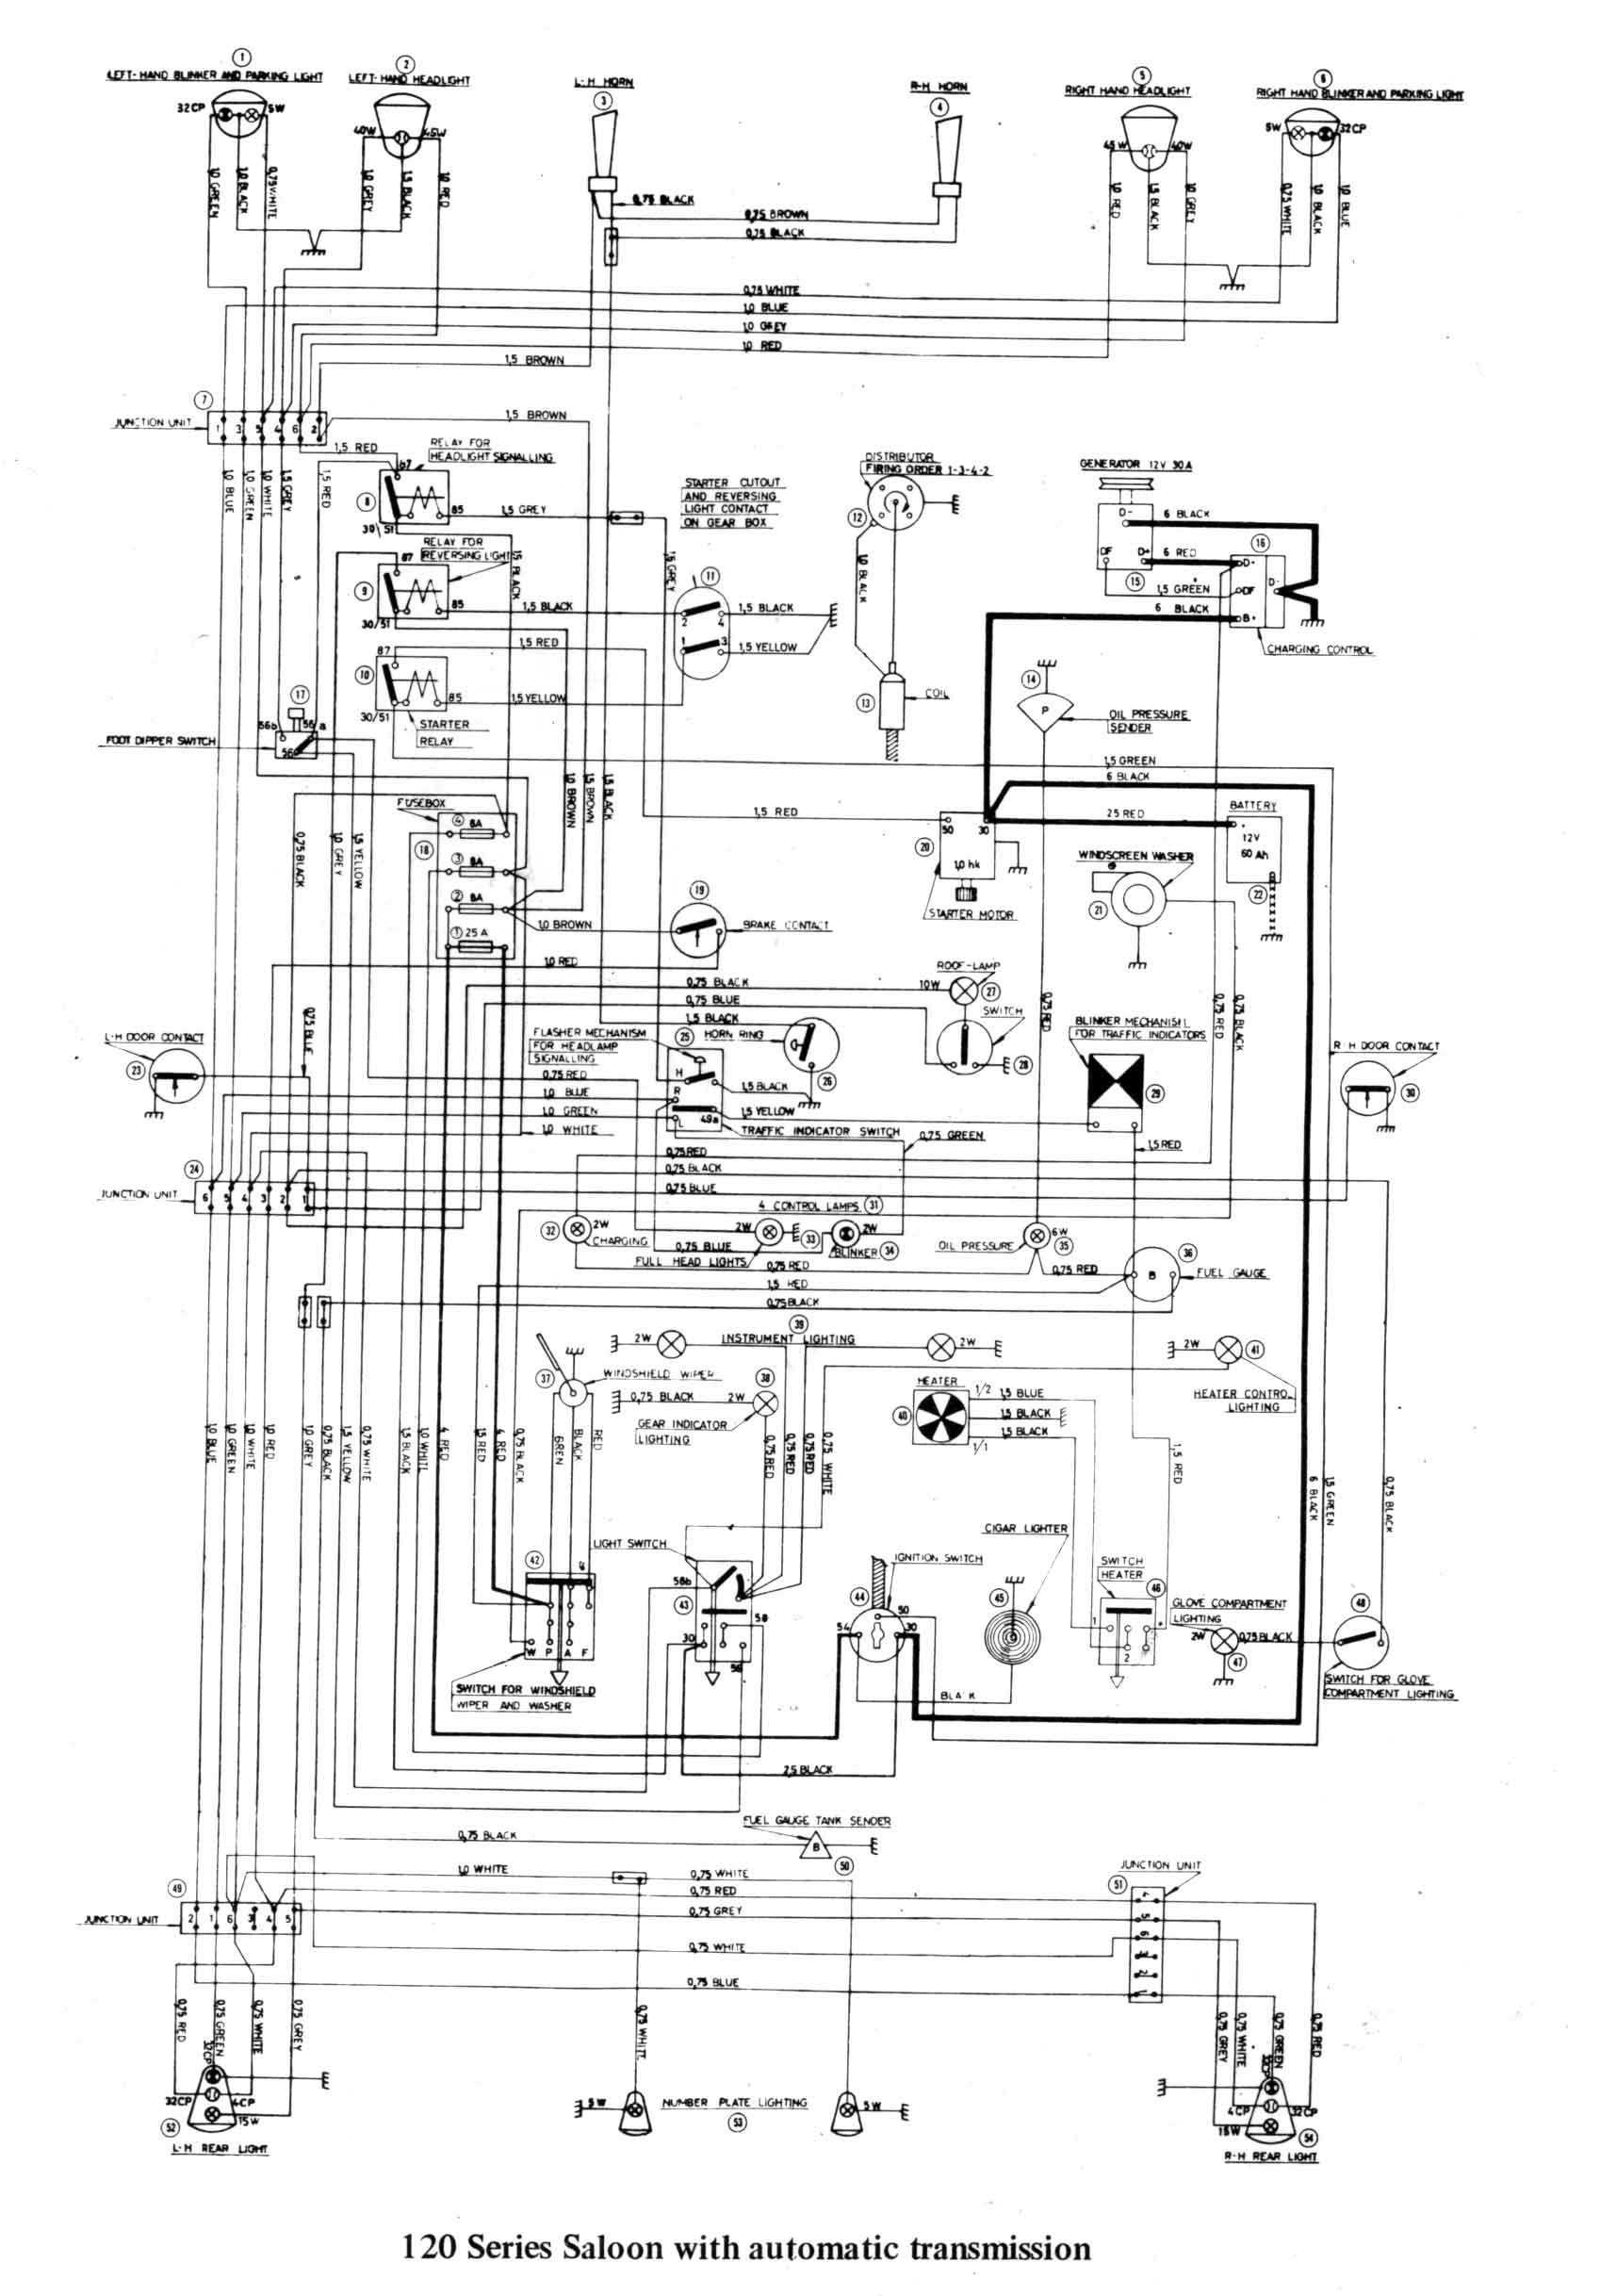 vintage e z go golf cart wiring diagram collection of wiring diagram u2022 rh wiringbase today 1999